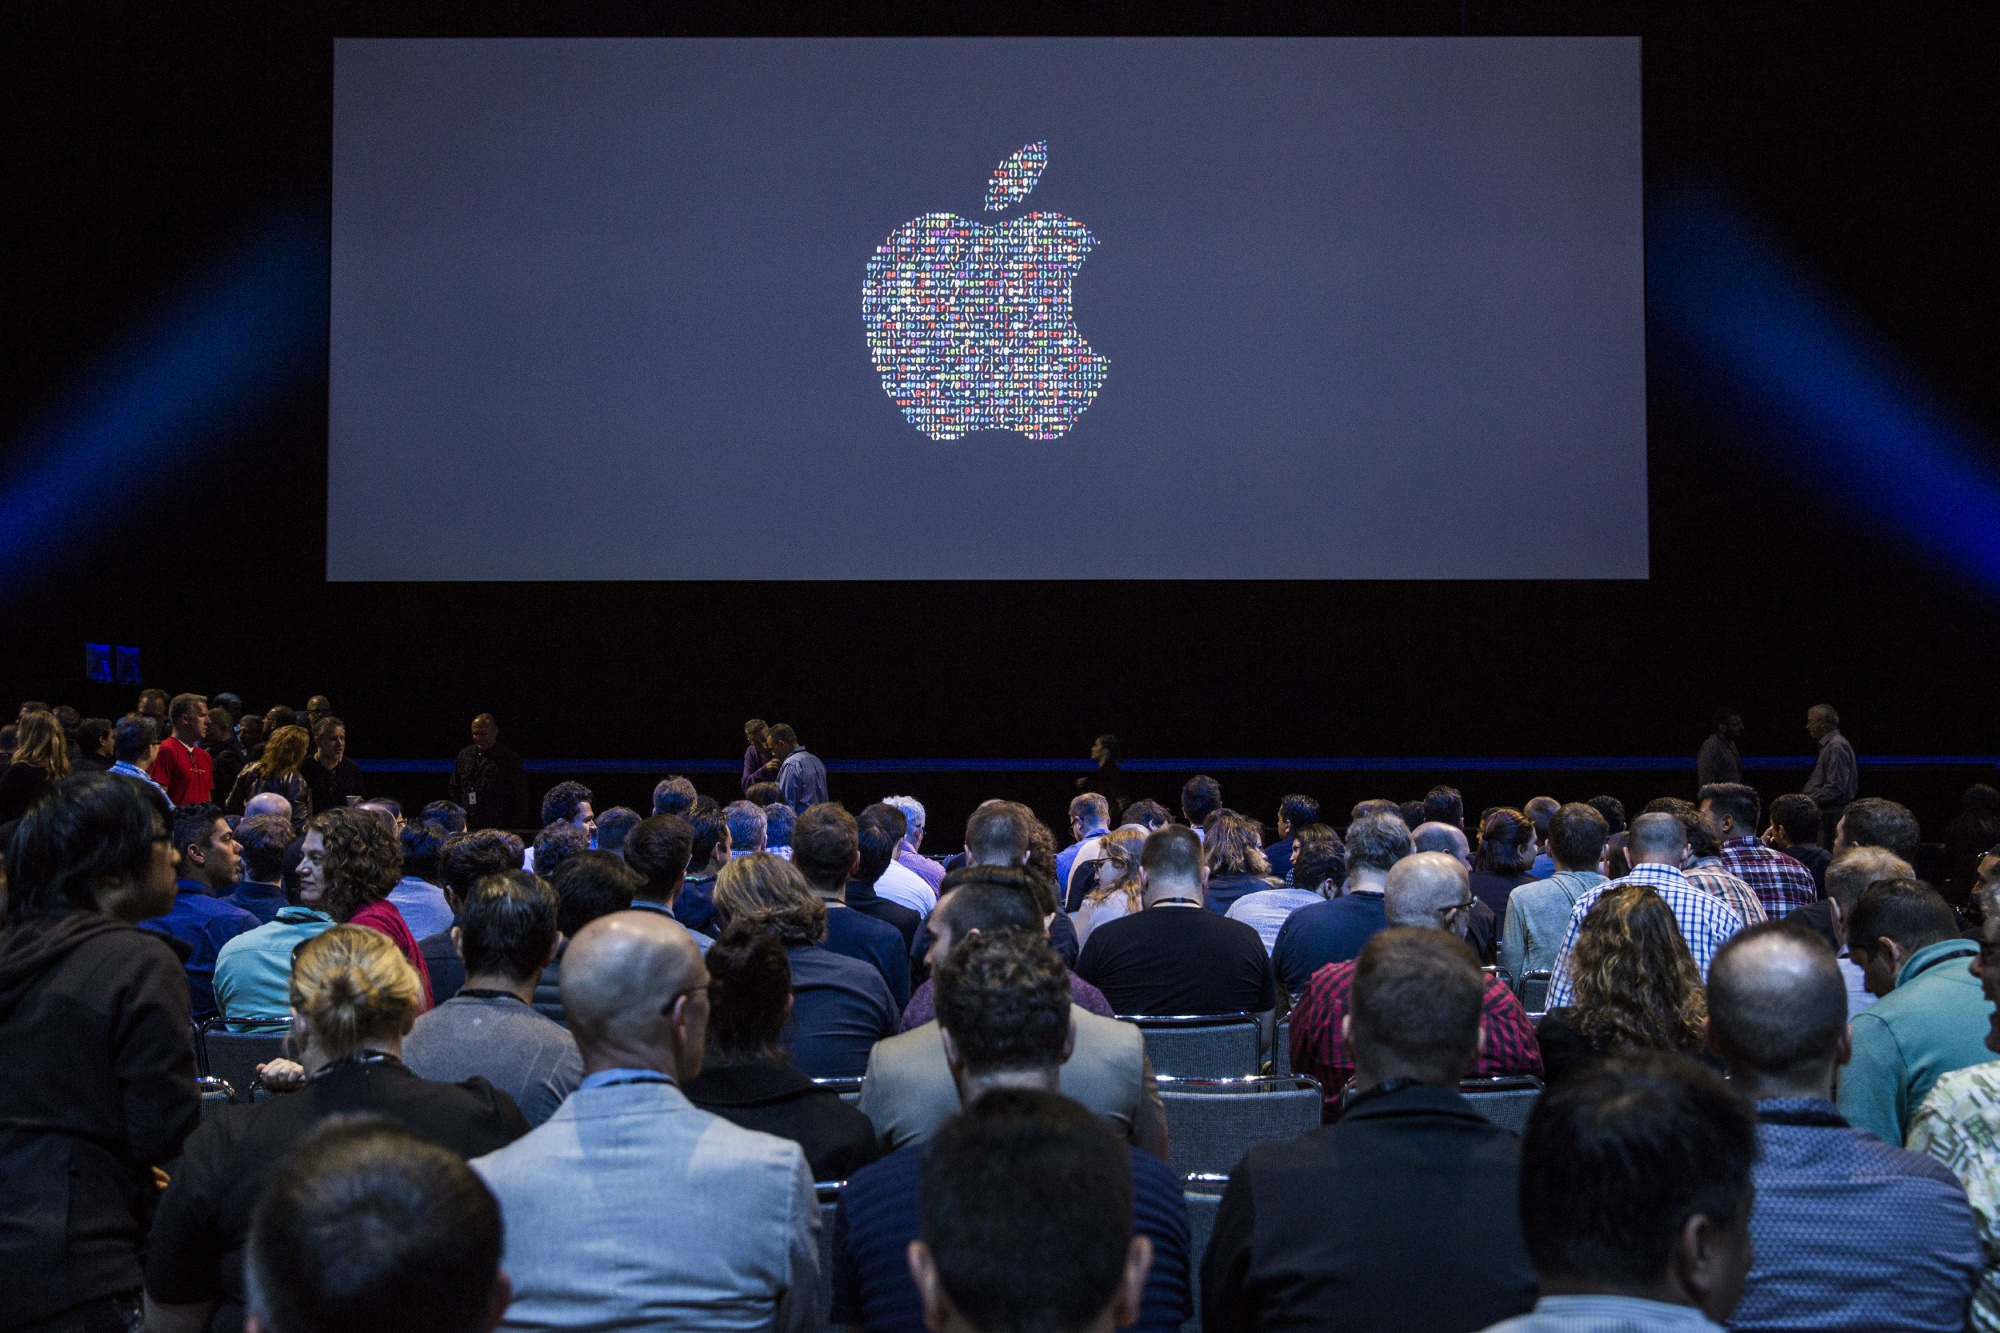 bloomberg.com - Shira Ovide - Apple's Growth Depends on Androids